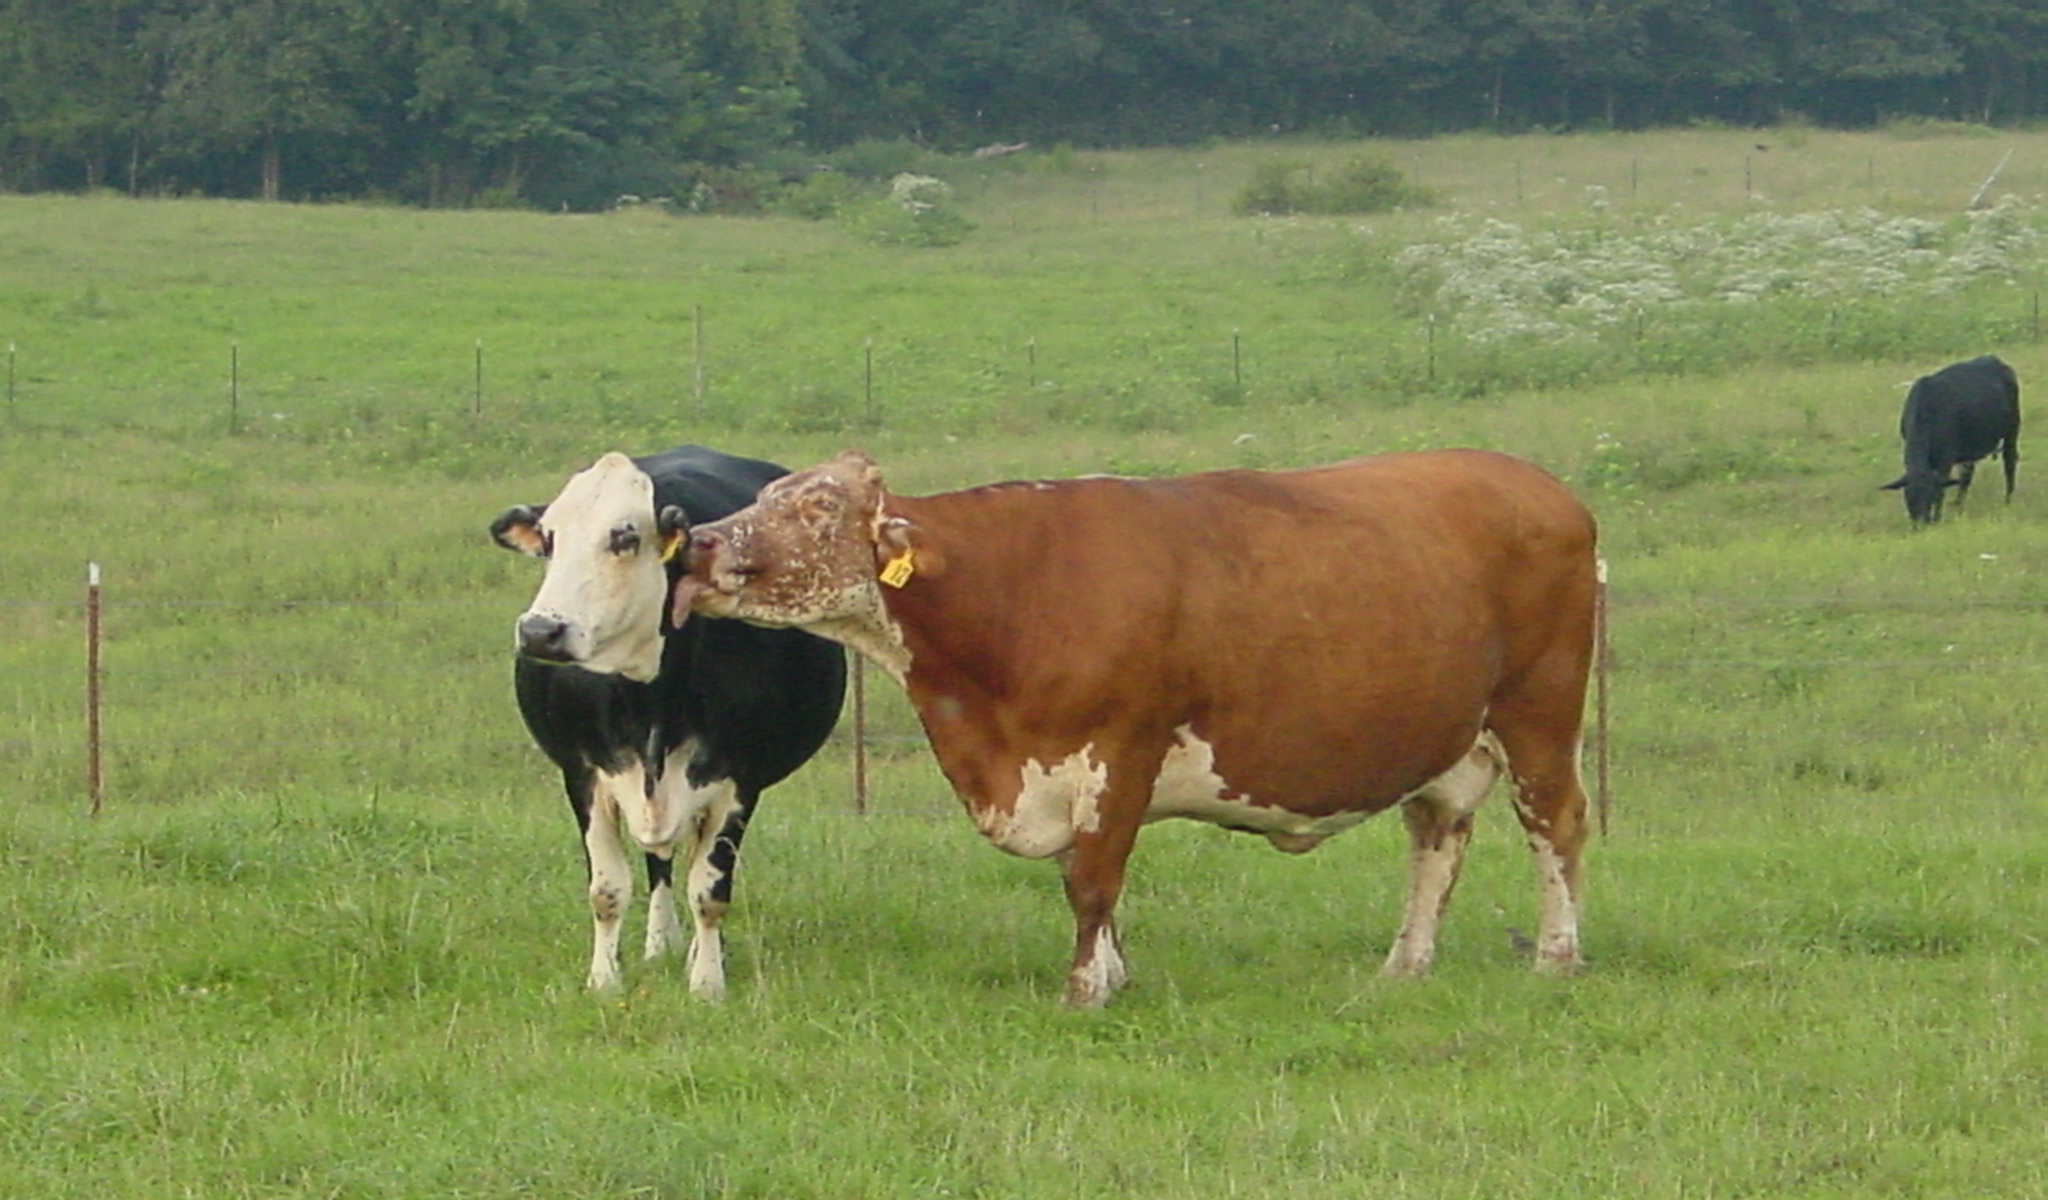 a brown cow licking a black and white cow